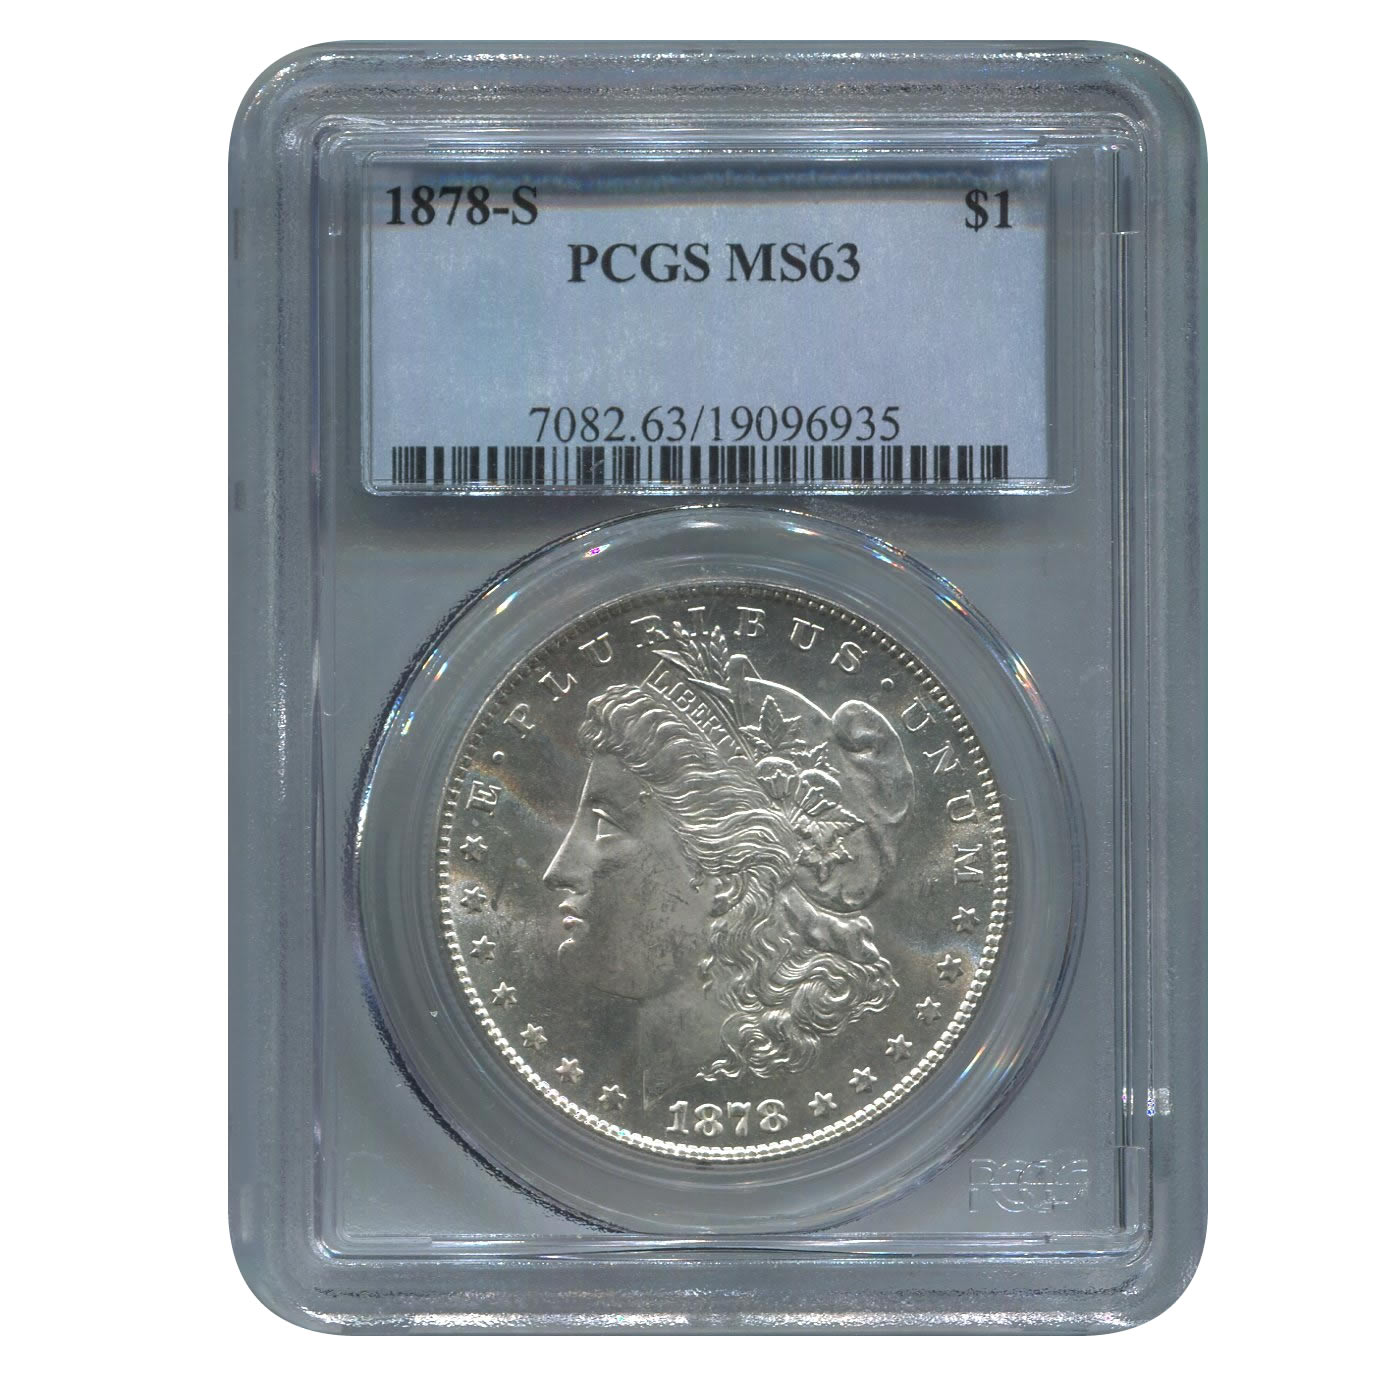 Certified Morgan Silver Dollar 1878-S MS 63 PCGS